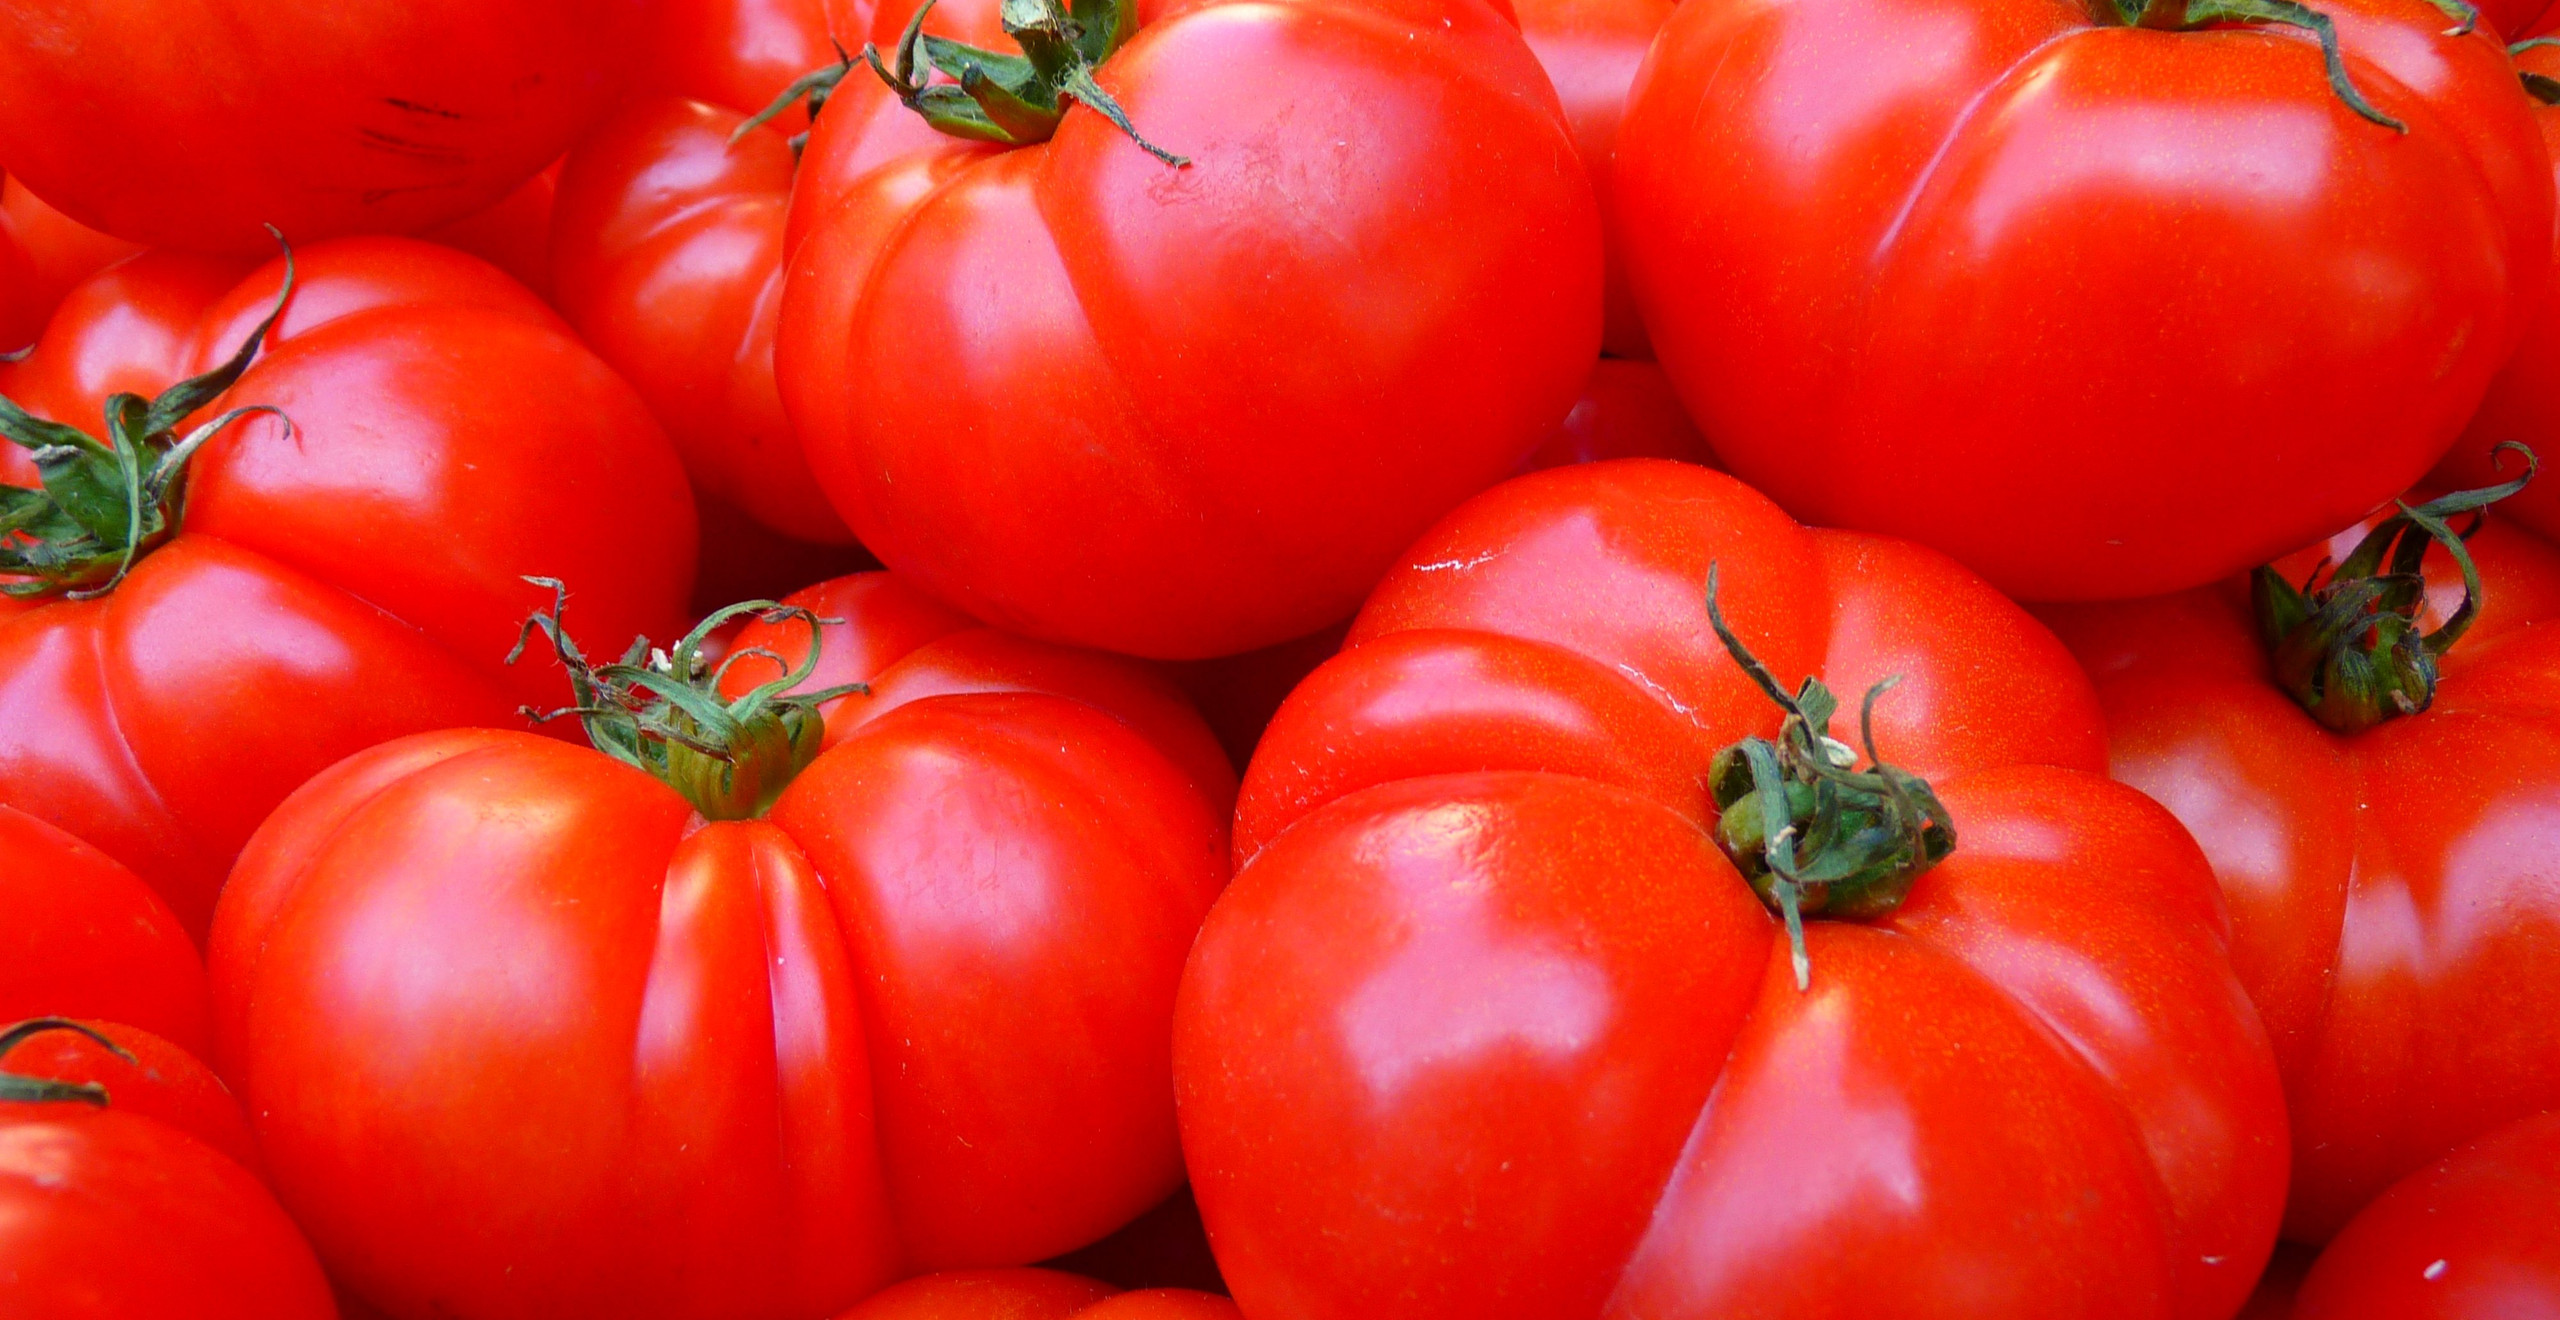 Fresh Tomatoes are the rich source of Vitamin K to human body.